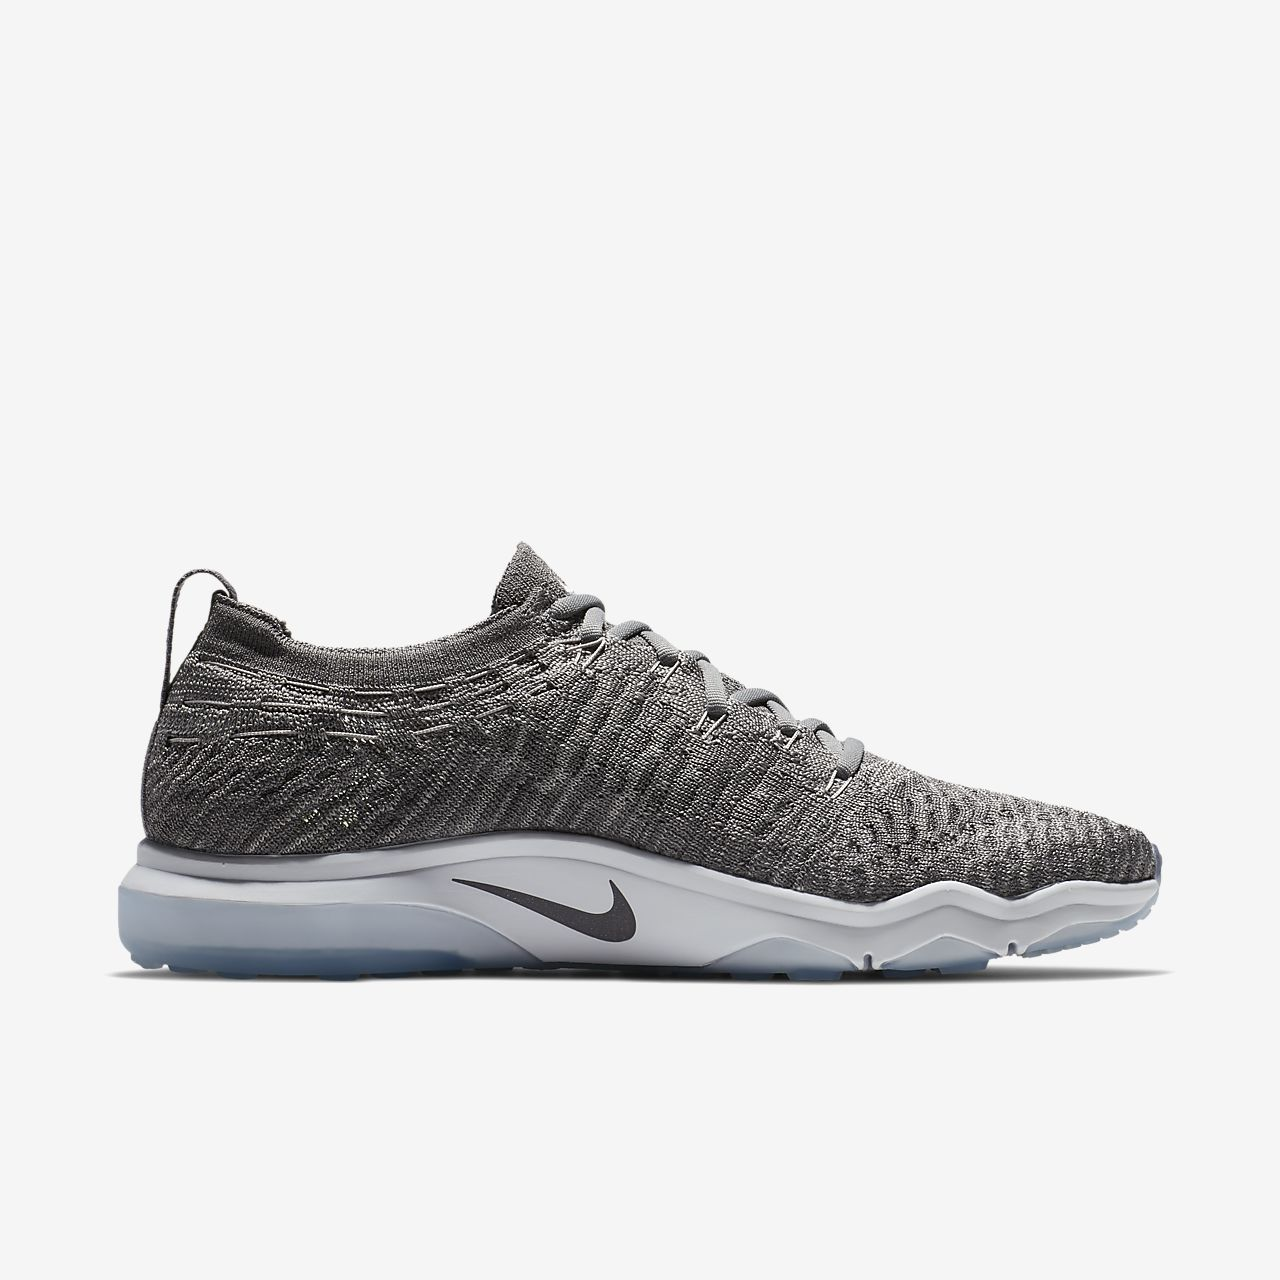 Nike Baskets basses Air Zoom Fearless Flyknit Lux Gris n6X70pC9